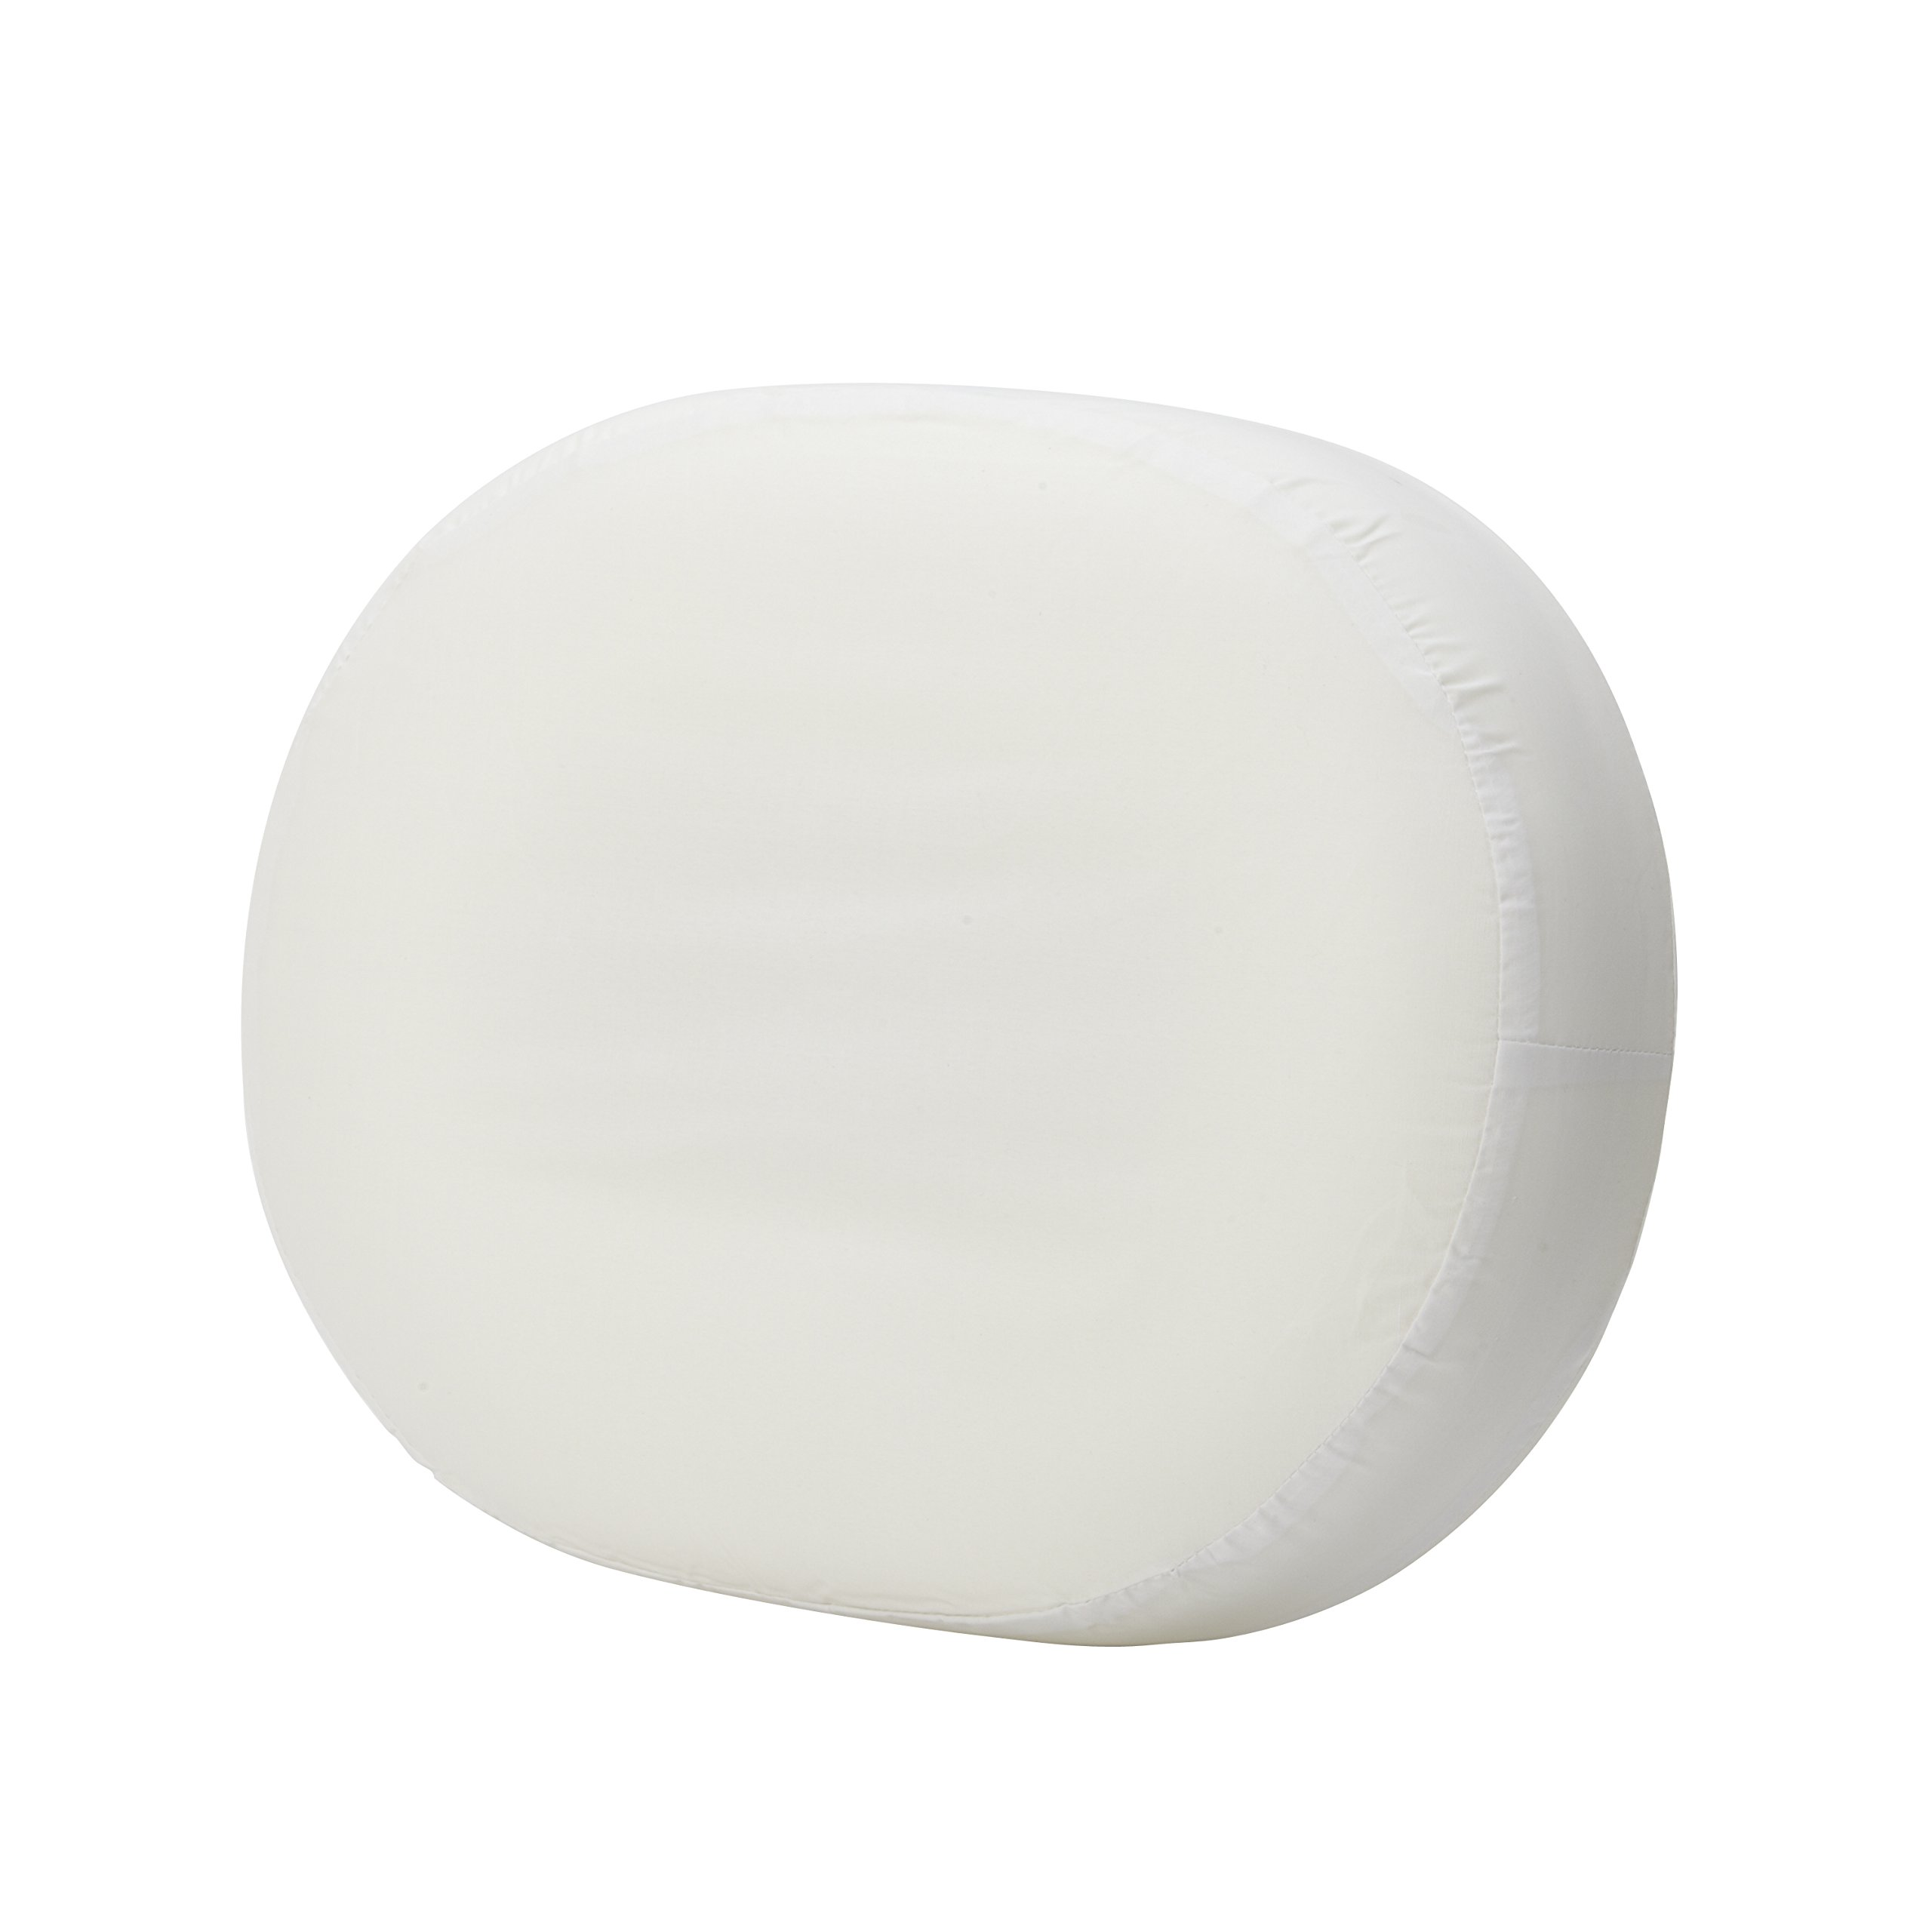 DMI 14-inch Molded Foam Ring Donut Seat Cushion Pillow for Hemorrhoids, Back Pain, White